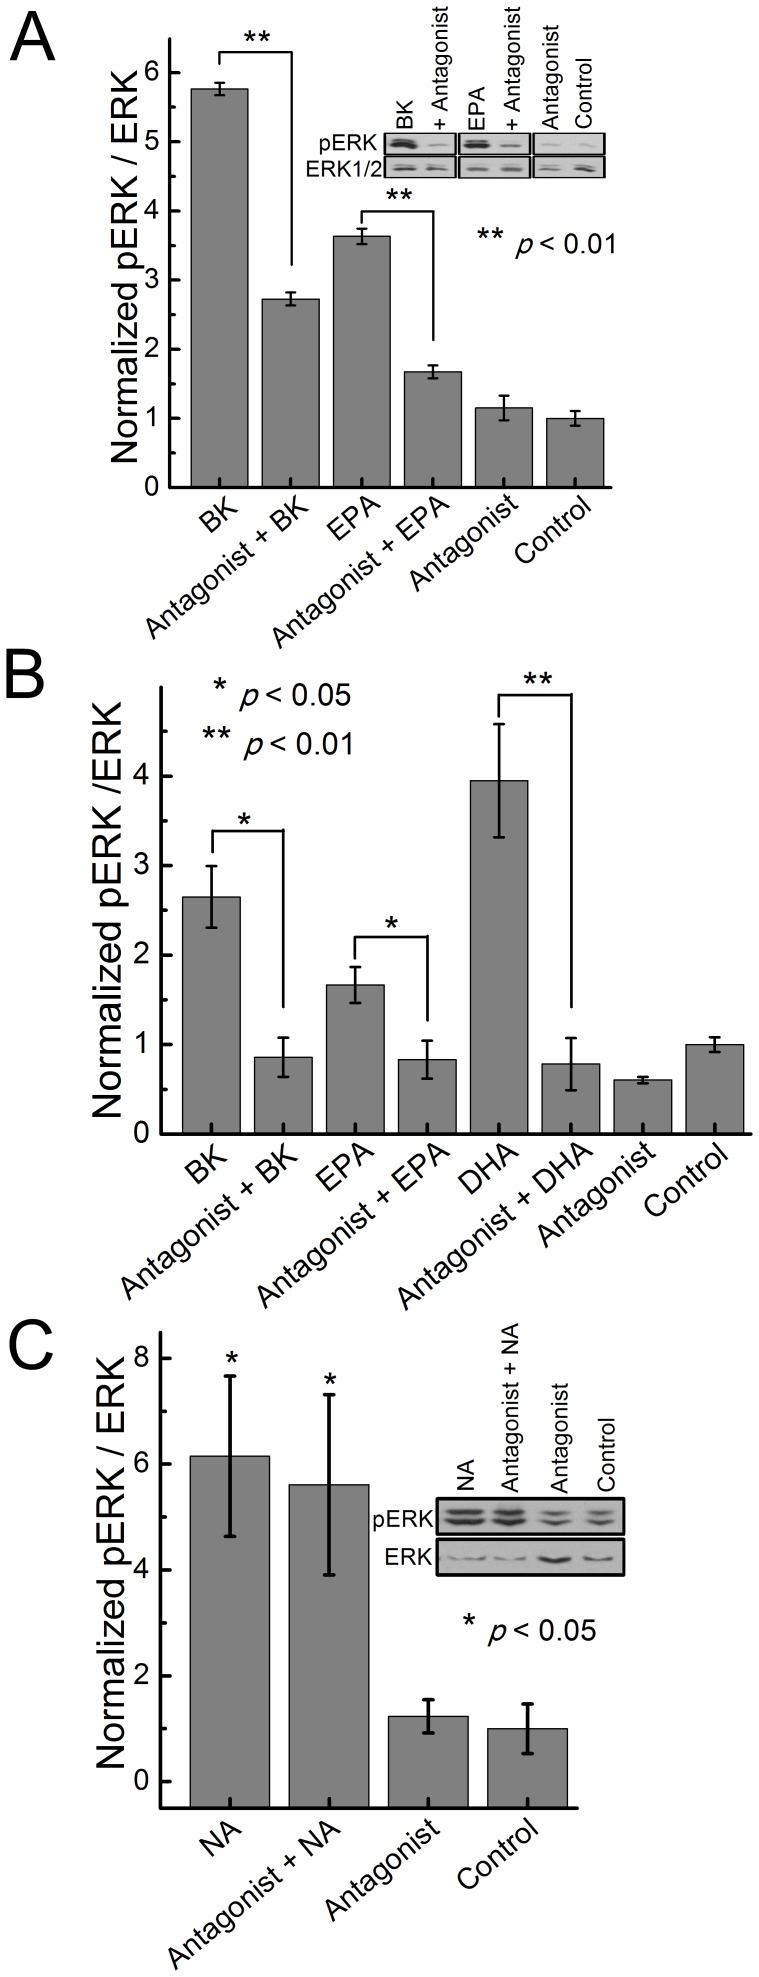 B 2 R antagonist inhibits ERK1/2 response to bradykinin and fatty acids. (A) Effect of 1µM of B 2 R antagonist HOE-140 on pERK stimulated with: 100 nM bradykinin, 1 µM EPA and 10 µM DHA in DPBS for 5 minutes at 37°C. Experiments were done 24 h after transfection of HEK293 cells with B 2 R in 12-well plates. (B) Effect of 1 µM of B 2 R antagonist HOE-140, on pERK stimulated with 10 nM BK, 1 µM EPA and 1 µM DHA in BAECs expressing endogenous B 2 R. Ratio of pERK to ERK was measured using western blots. (C) Effect of 1 µM of B 2 R antagonist HOE-140, on pERK stimulated with 100 nM NA in BAECs expressing endogenous adrenergic receptors. Data represent the mean of at least four independent experiments.